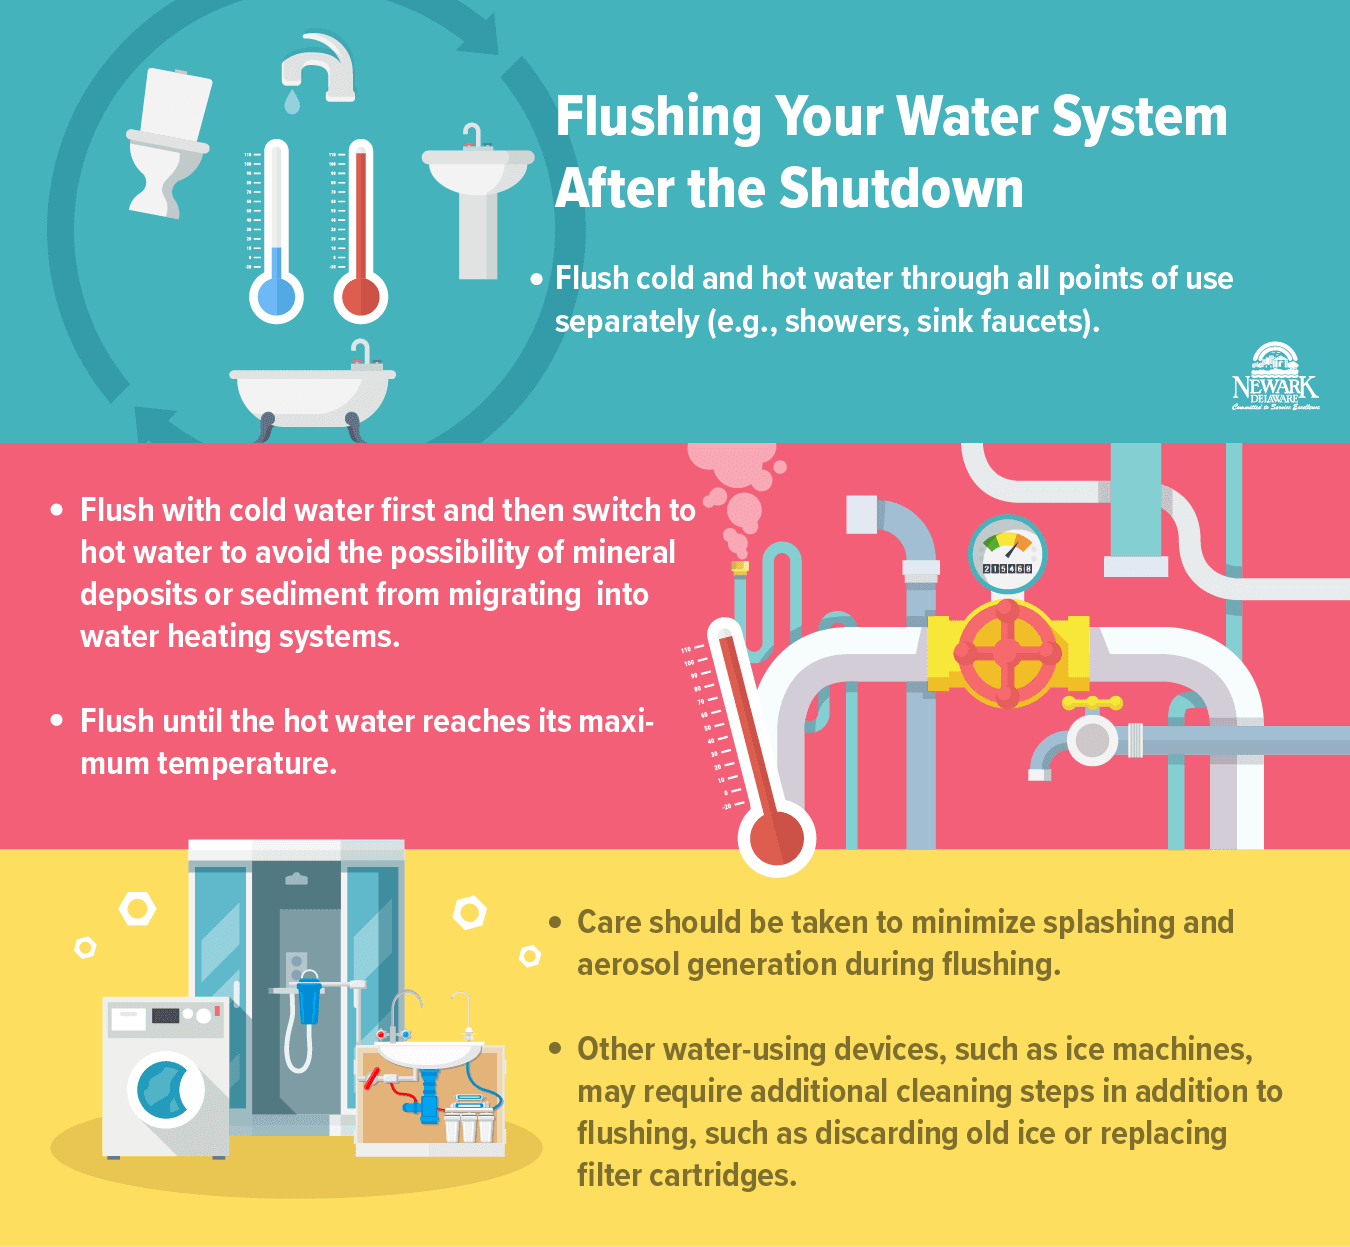 Flushing Your Water System After the Shutdown